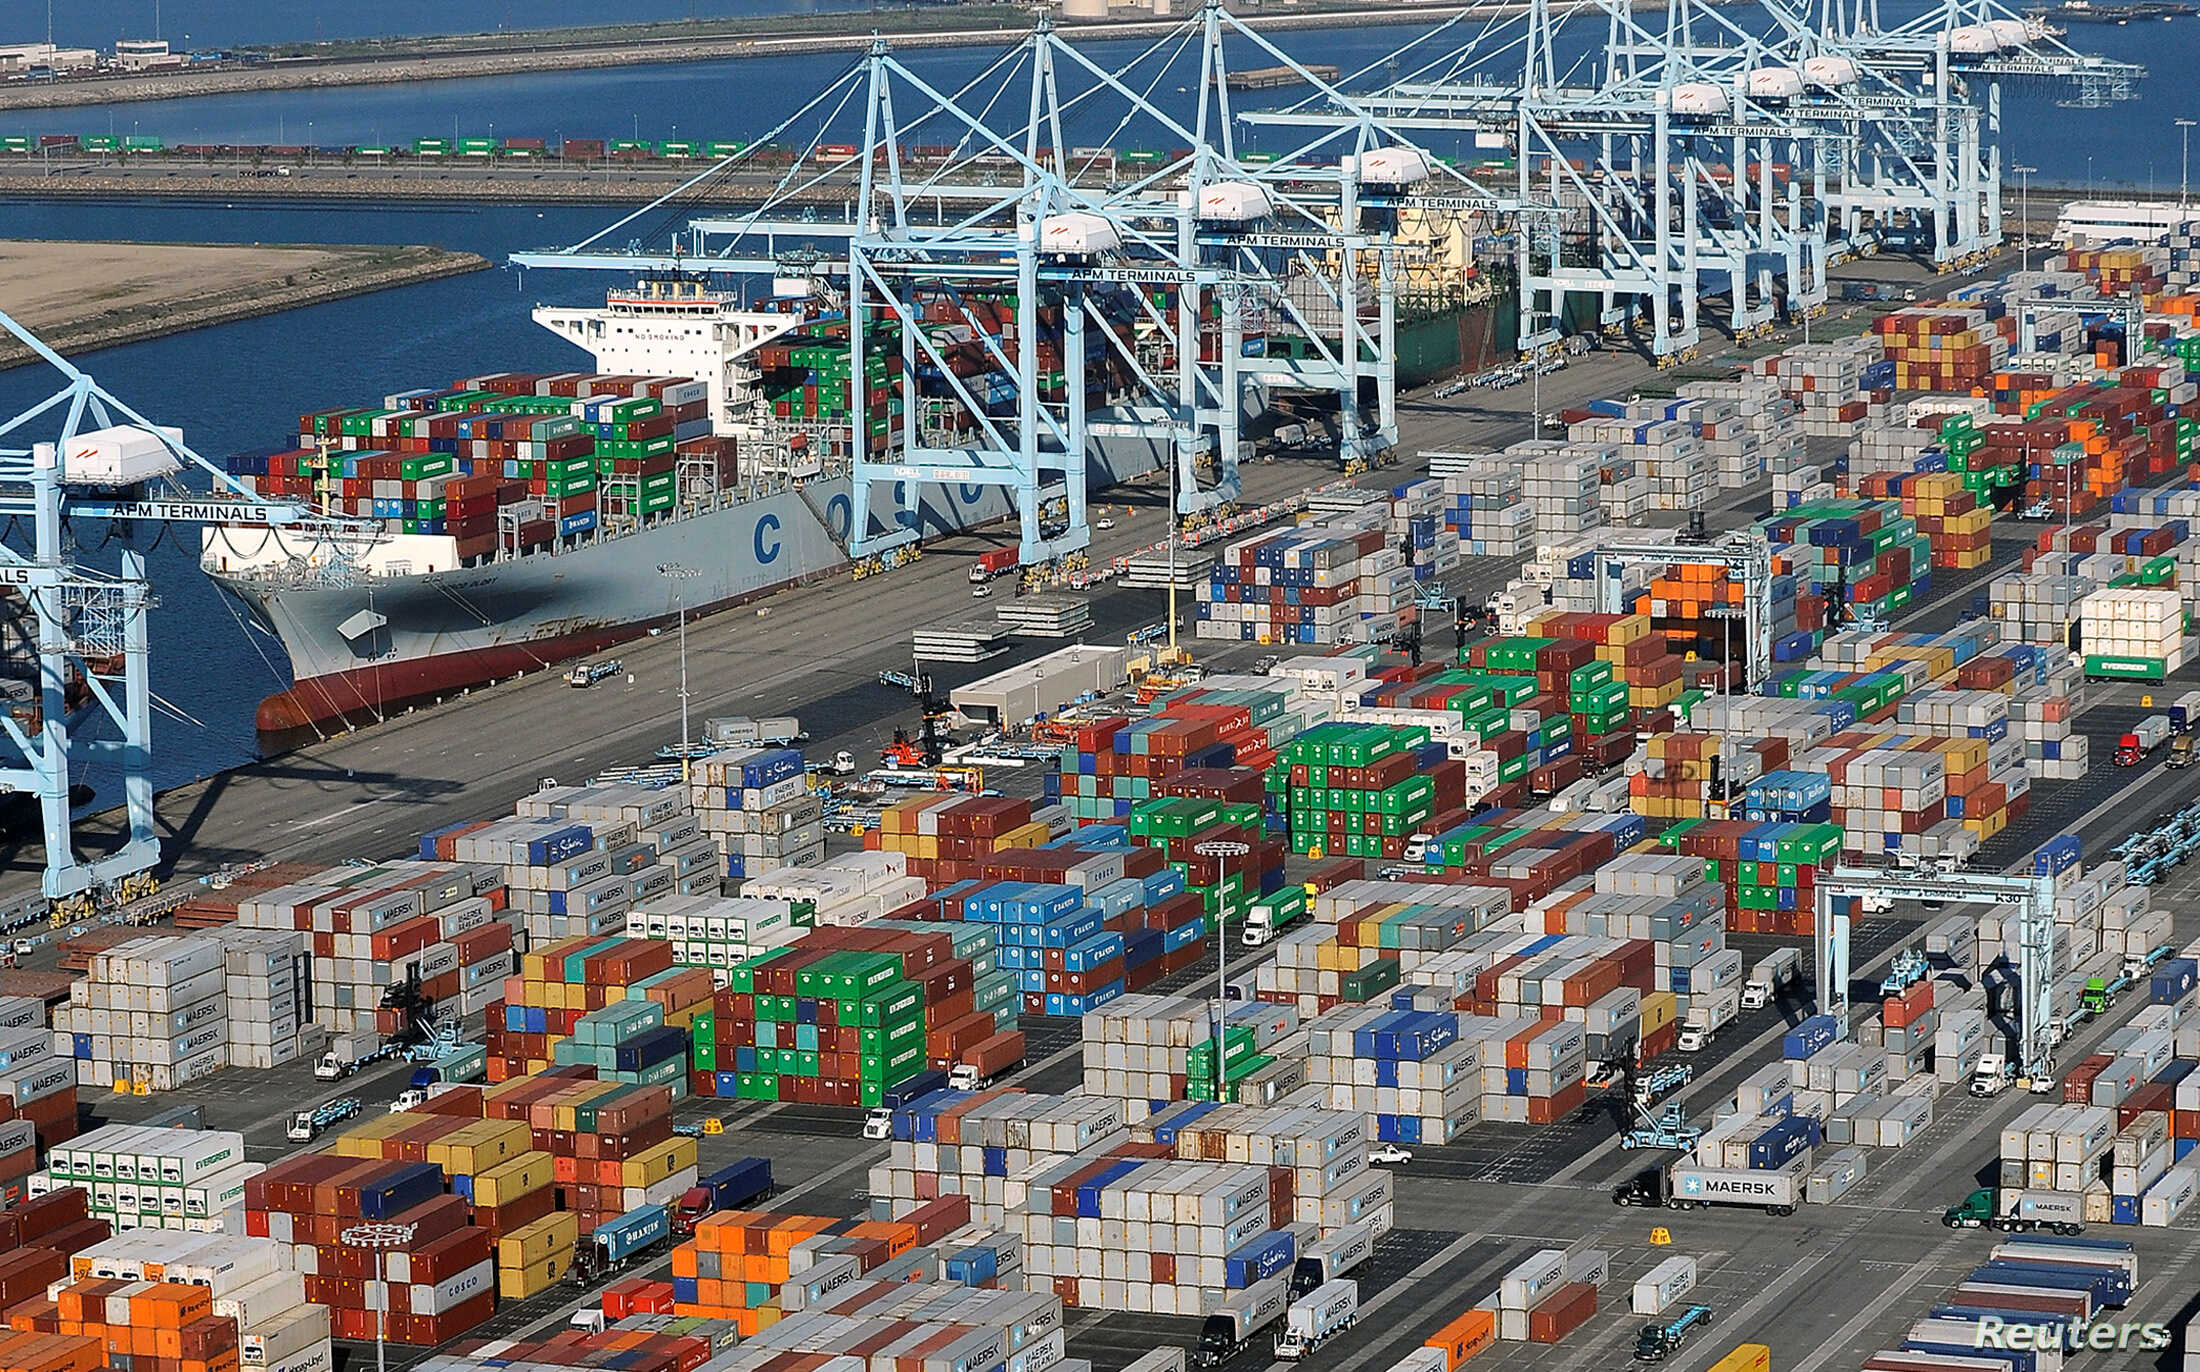 FILE - Shipping containers sit at the ports of Los Angeles and Long Beach, Calif., in this aerial photo, Feb. 6, 2015. China is the largest trading partner for both ports.